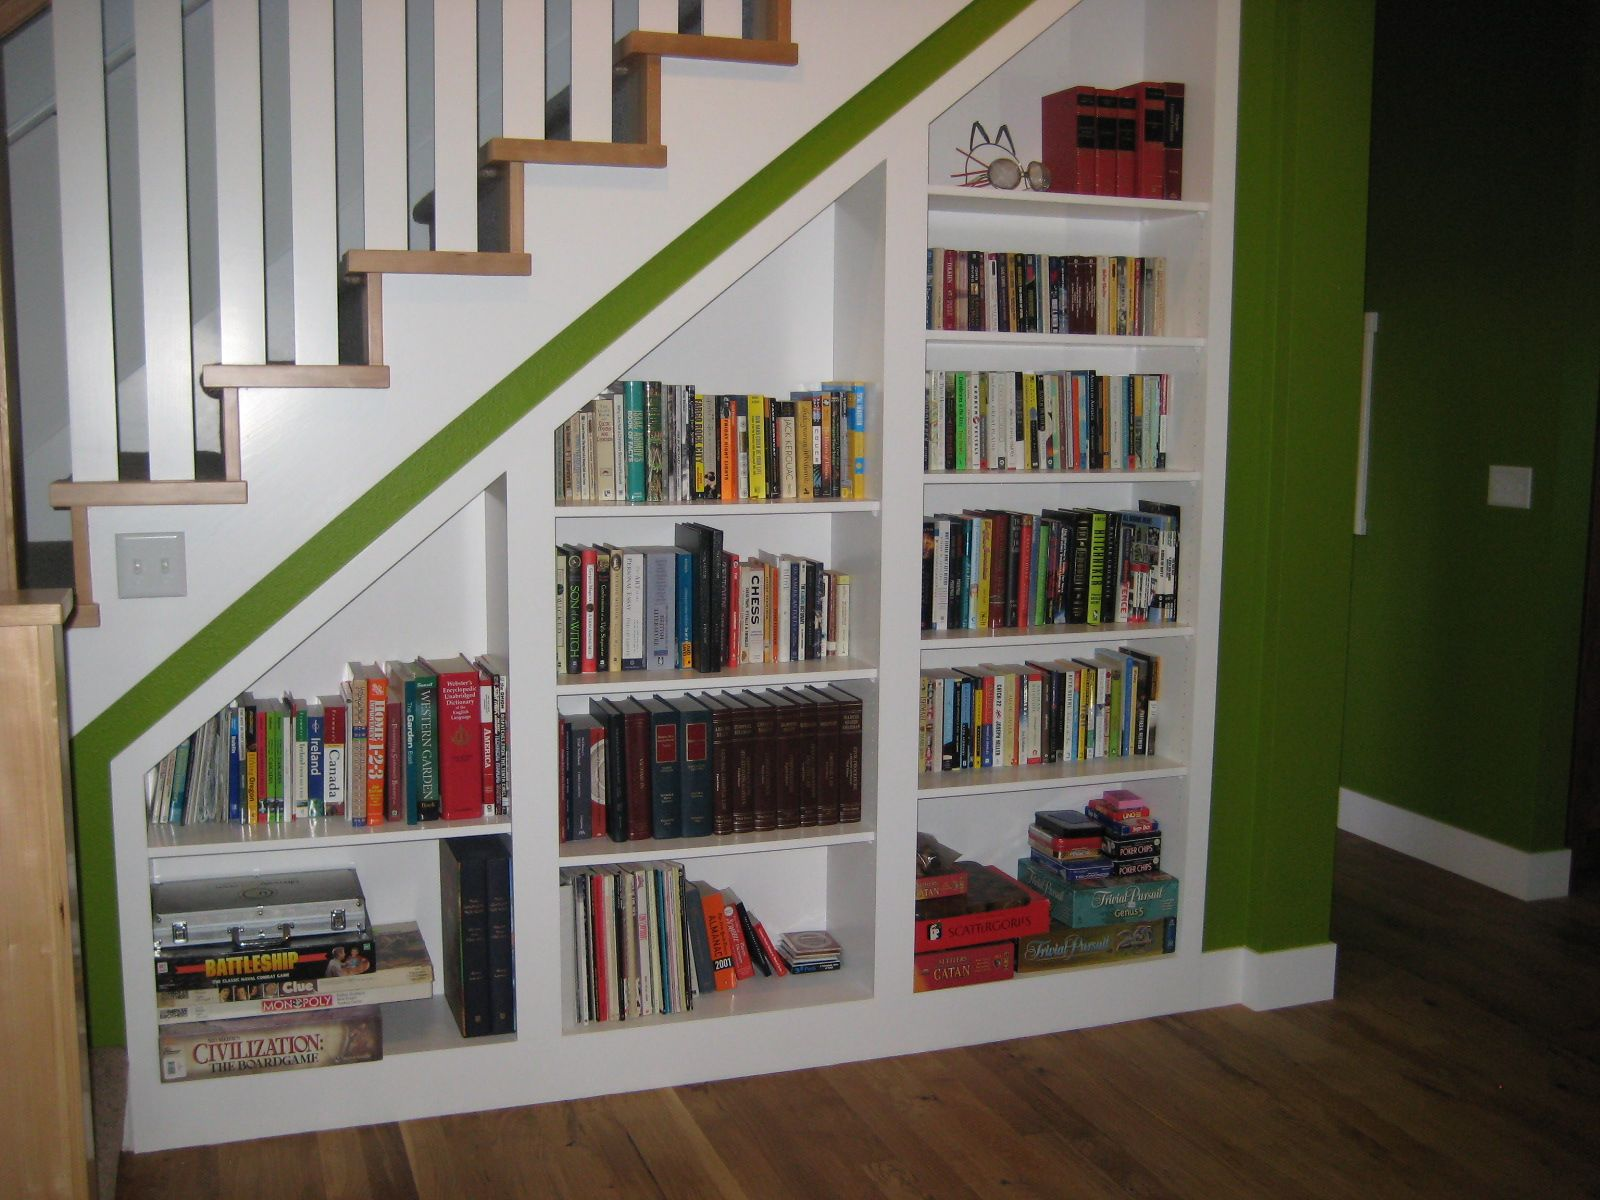 Under The Stairs Book Shelves Just In Case I Cant Have A Whole Room For Books